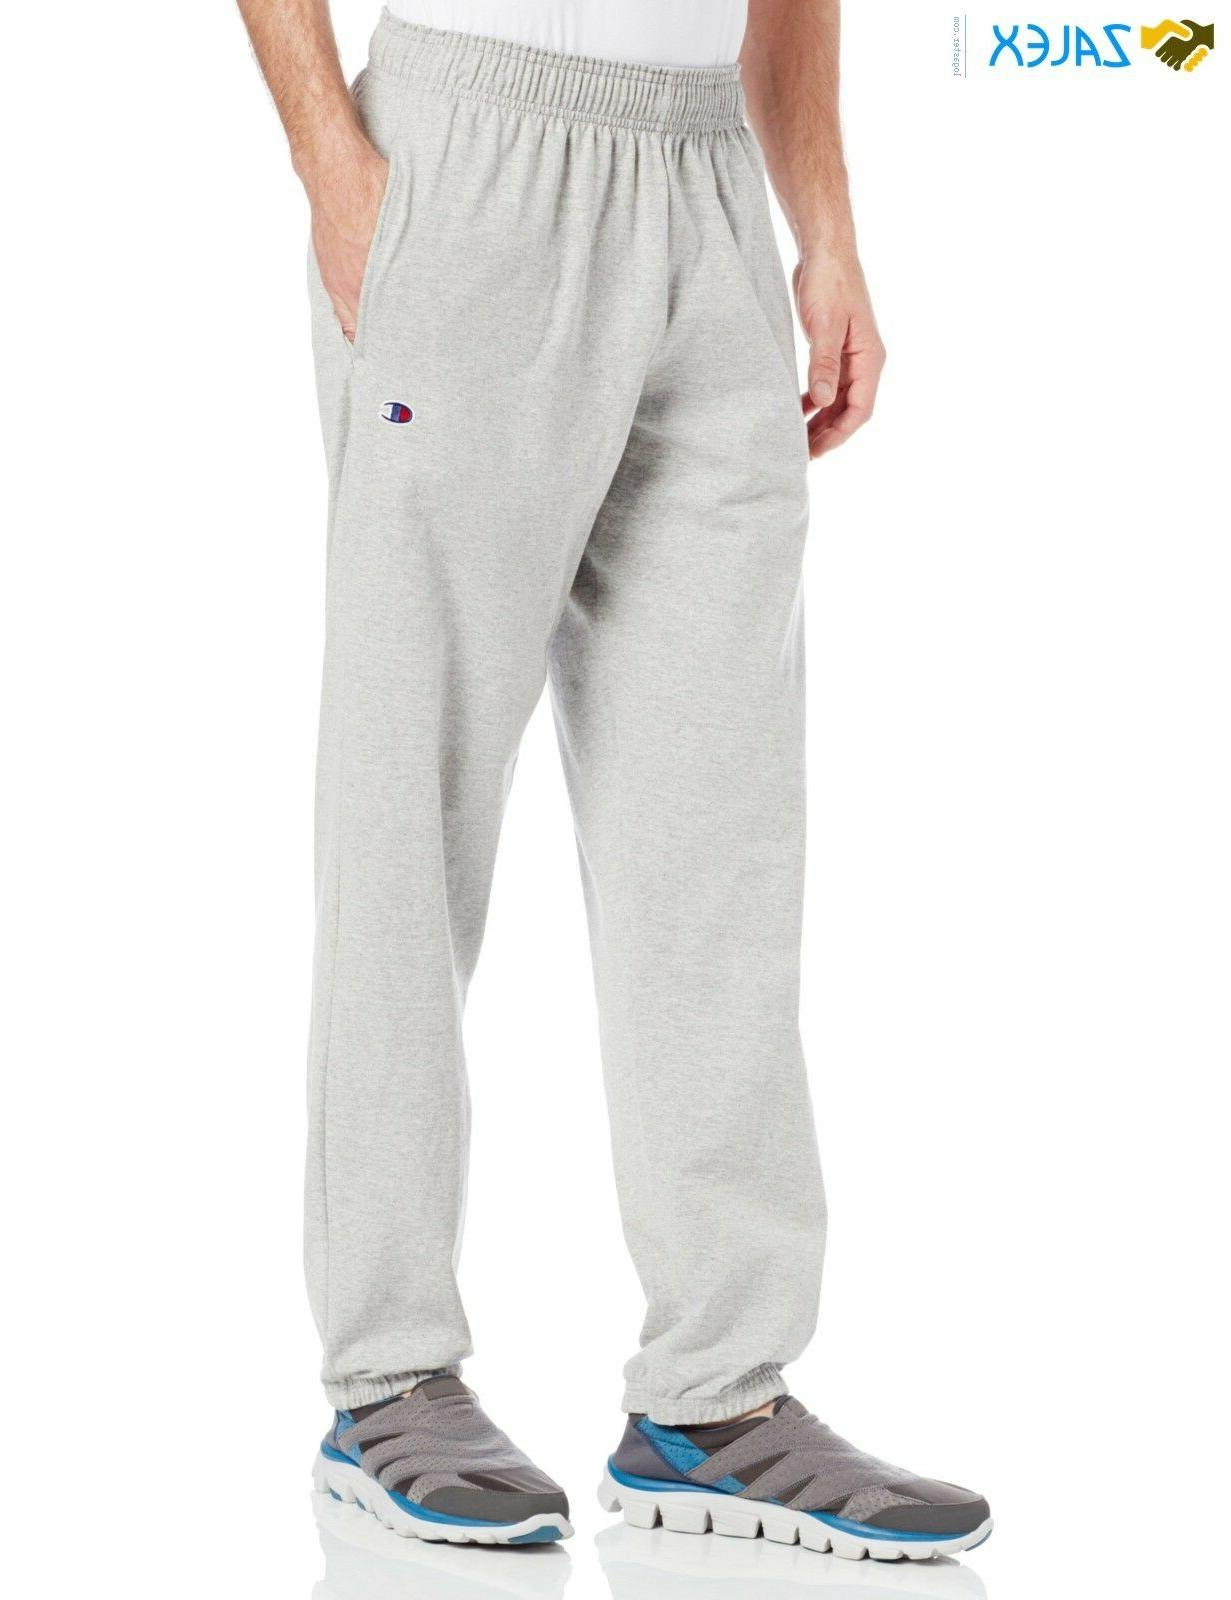 closed bottom light jersey sweatpant